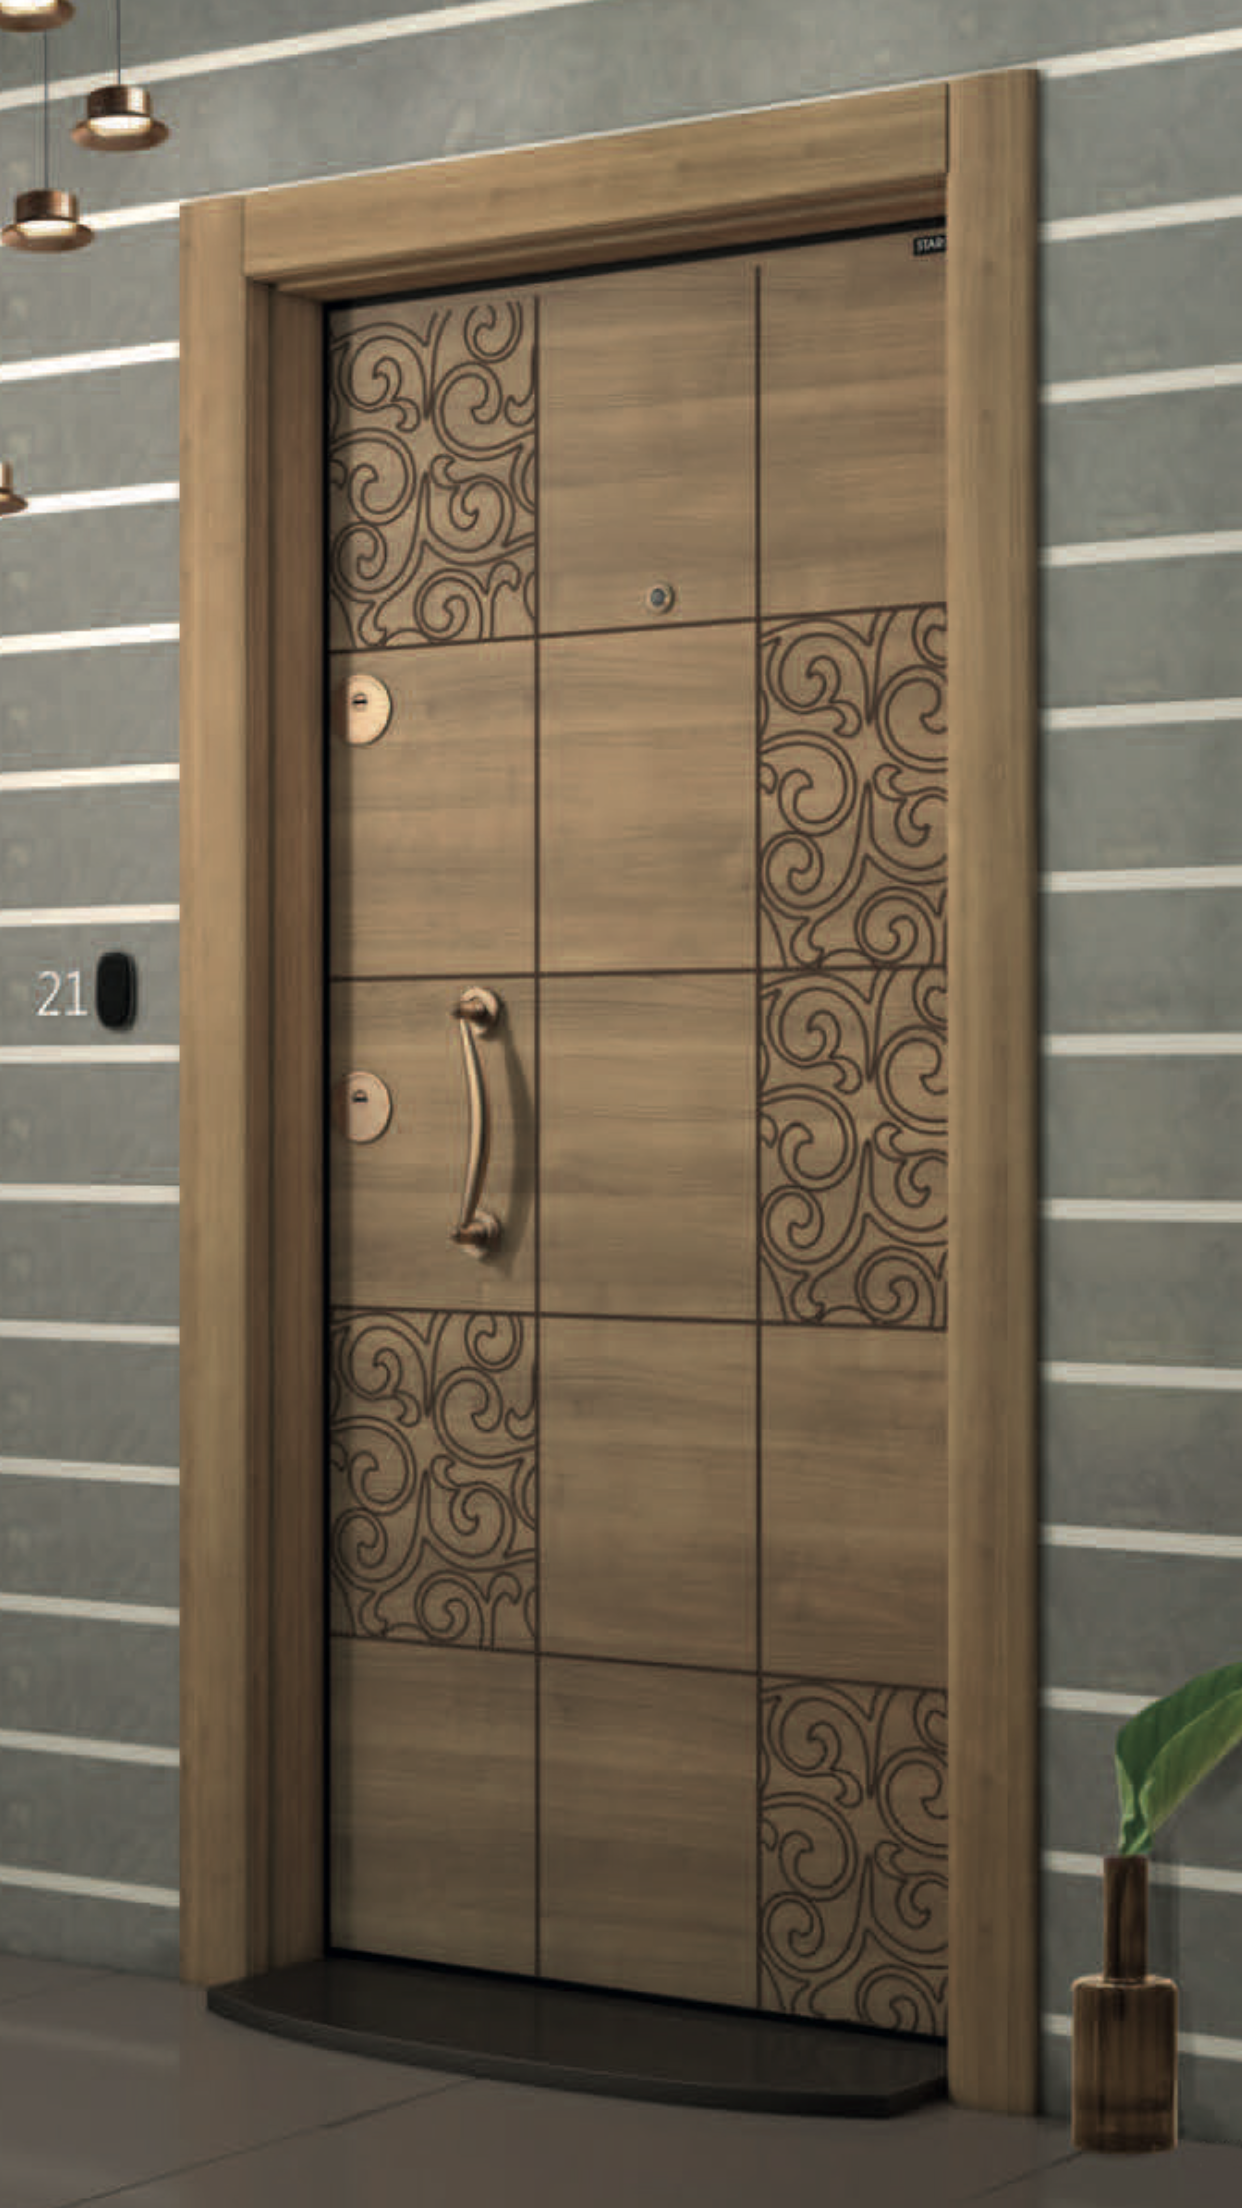 Door designs door designs portes portail maison - Modern front door designs ...